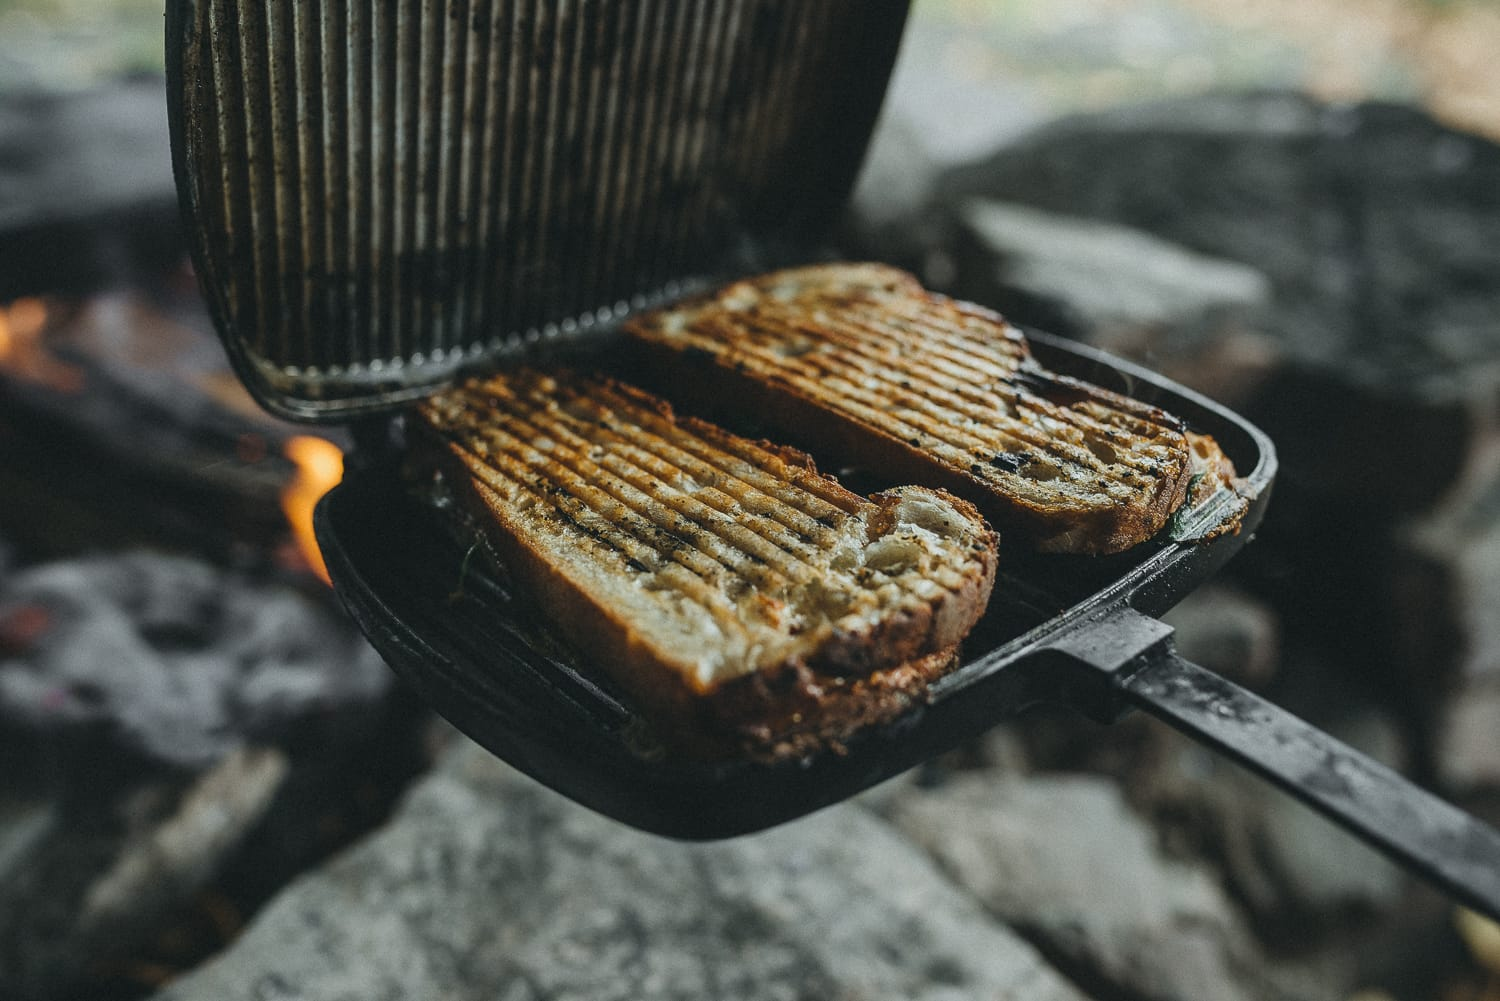 grilled sandwiches cooked over fire